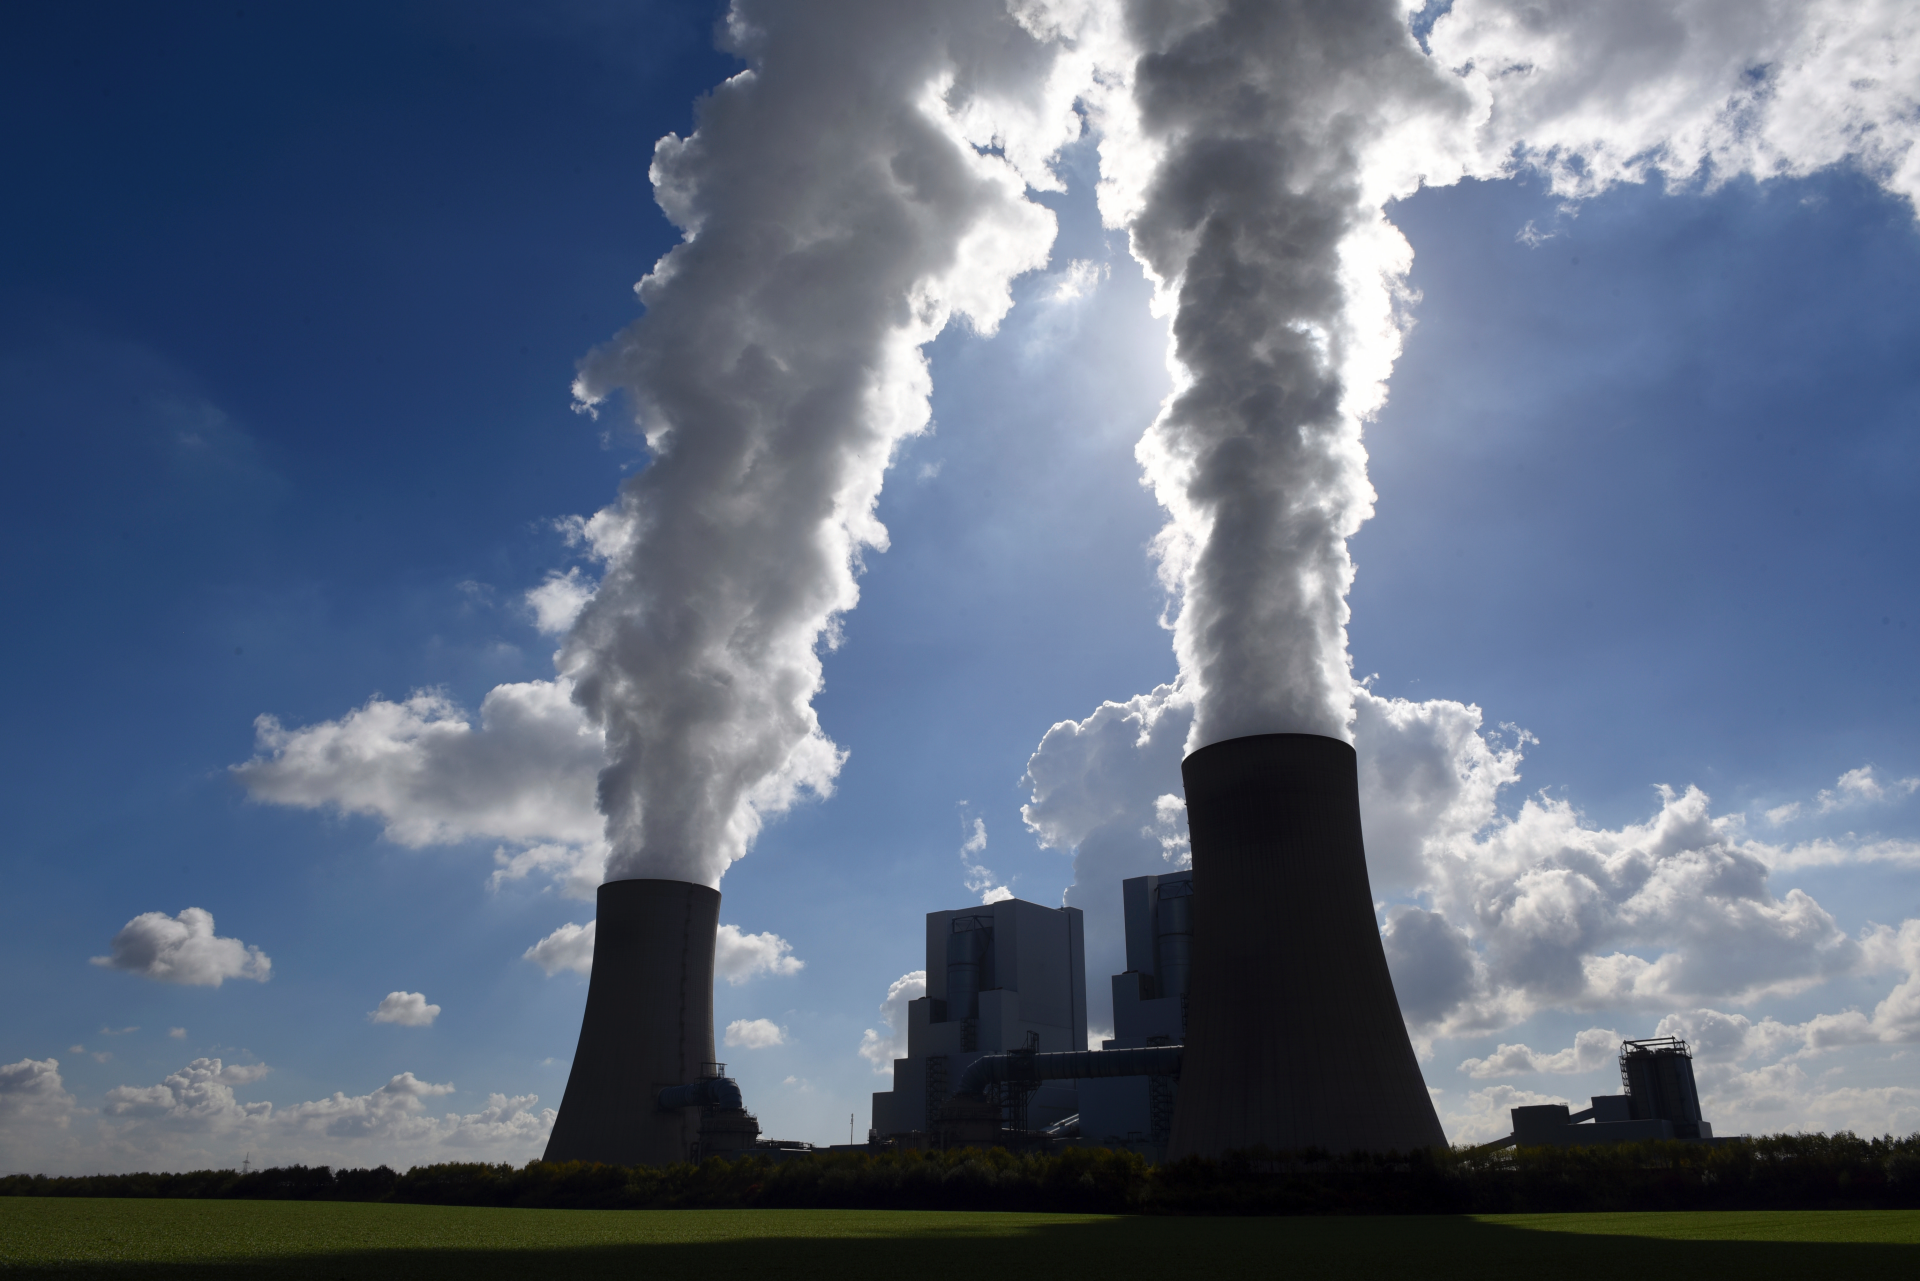 Westlake Legal Group ContentBroker_contentid-2f3a546b3a6f4d2492e475dcbab67b61 Germany's RWE says it won't invest in new coal power plants fox-news/world/world-regions/europe fox-news/world/environment fox-news/world fnc/world fnc Berlin Associated Press article 8c700486-5ac7-599a-9c8e-03c69b15dbd4